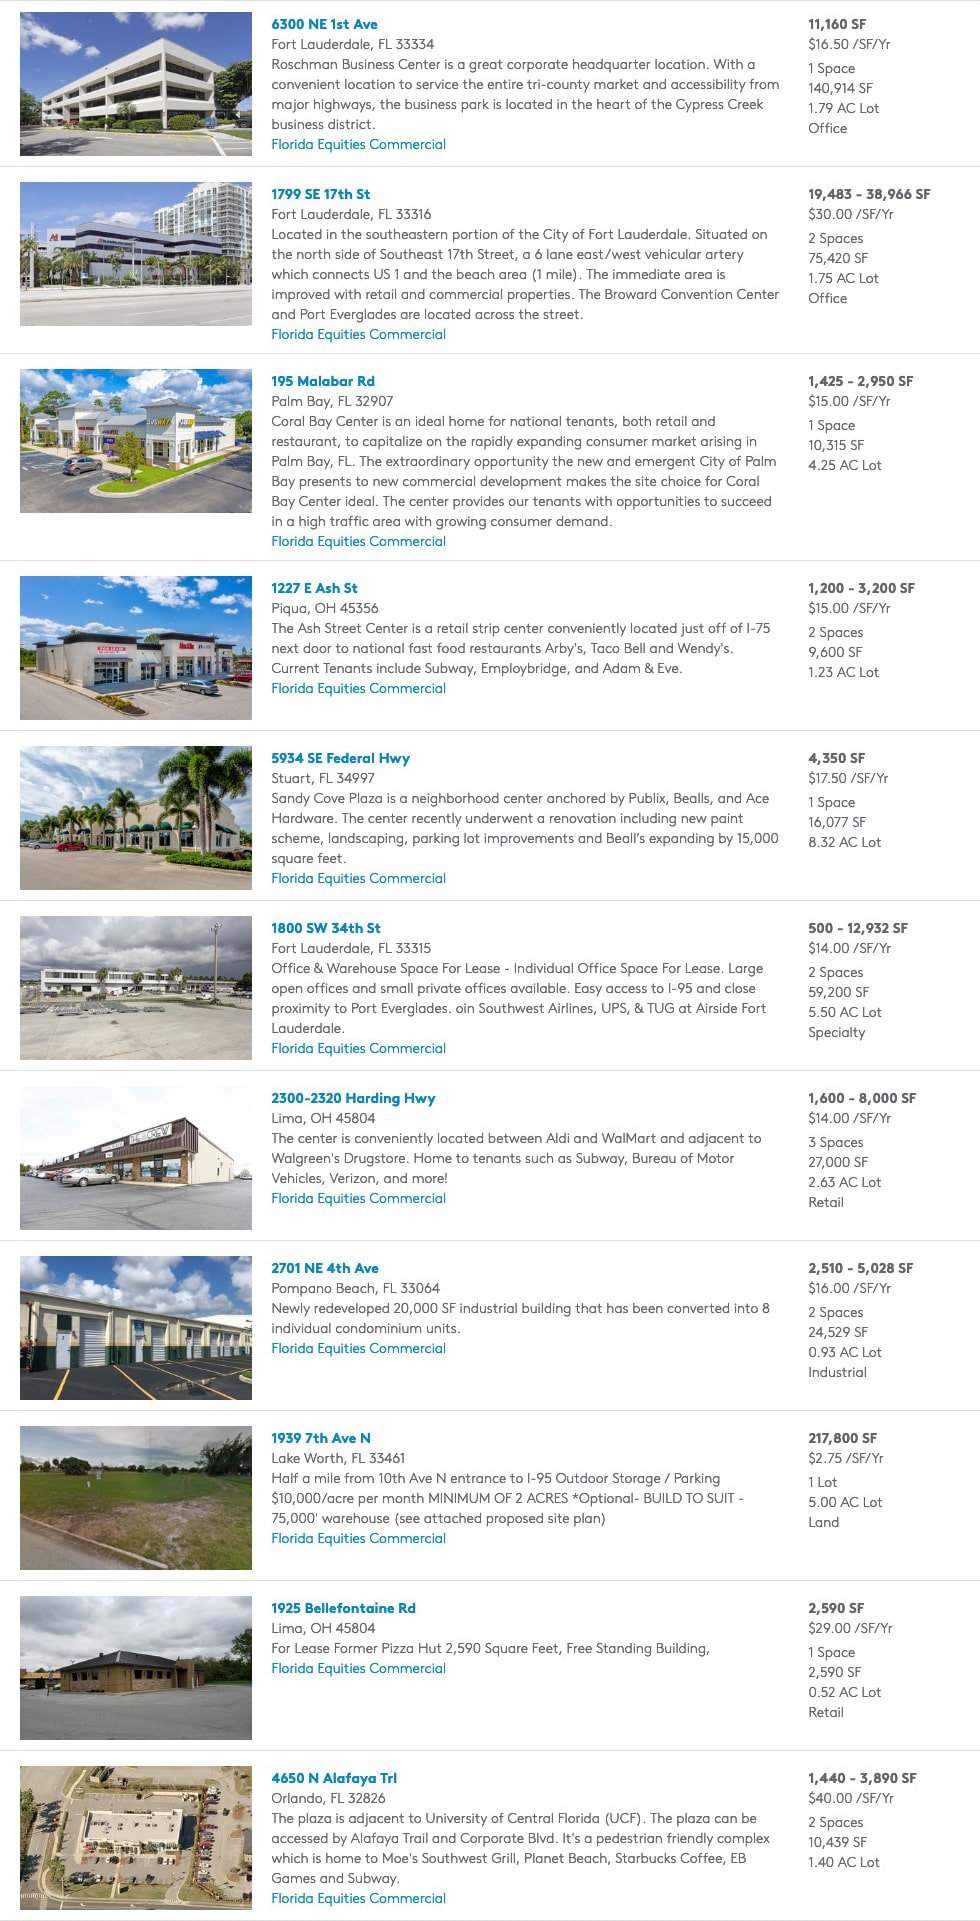 Florida Equities Real Estate - Listings 2020 p1